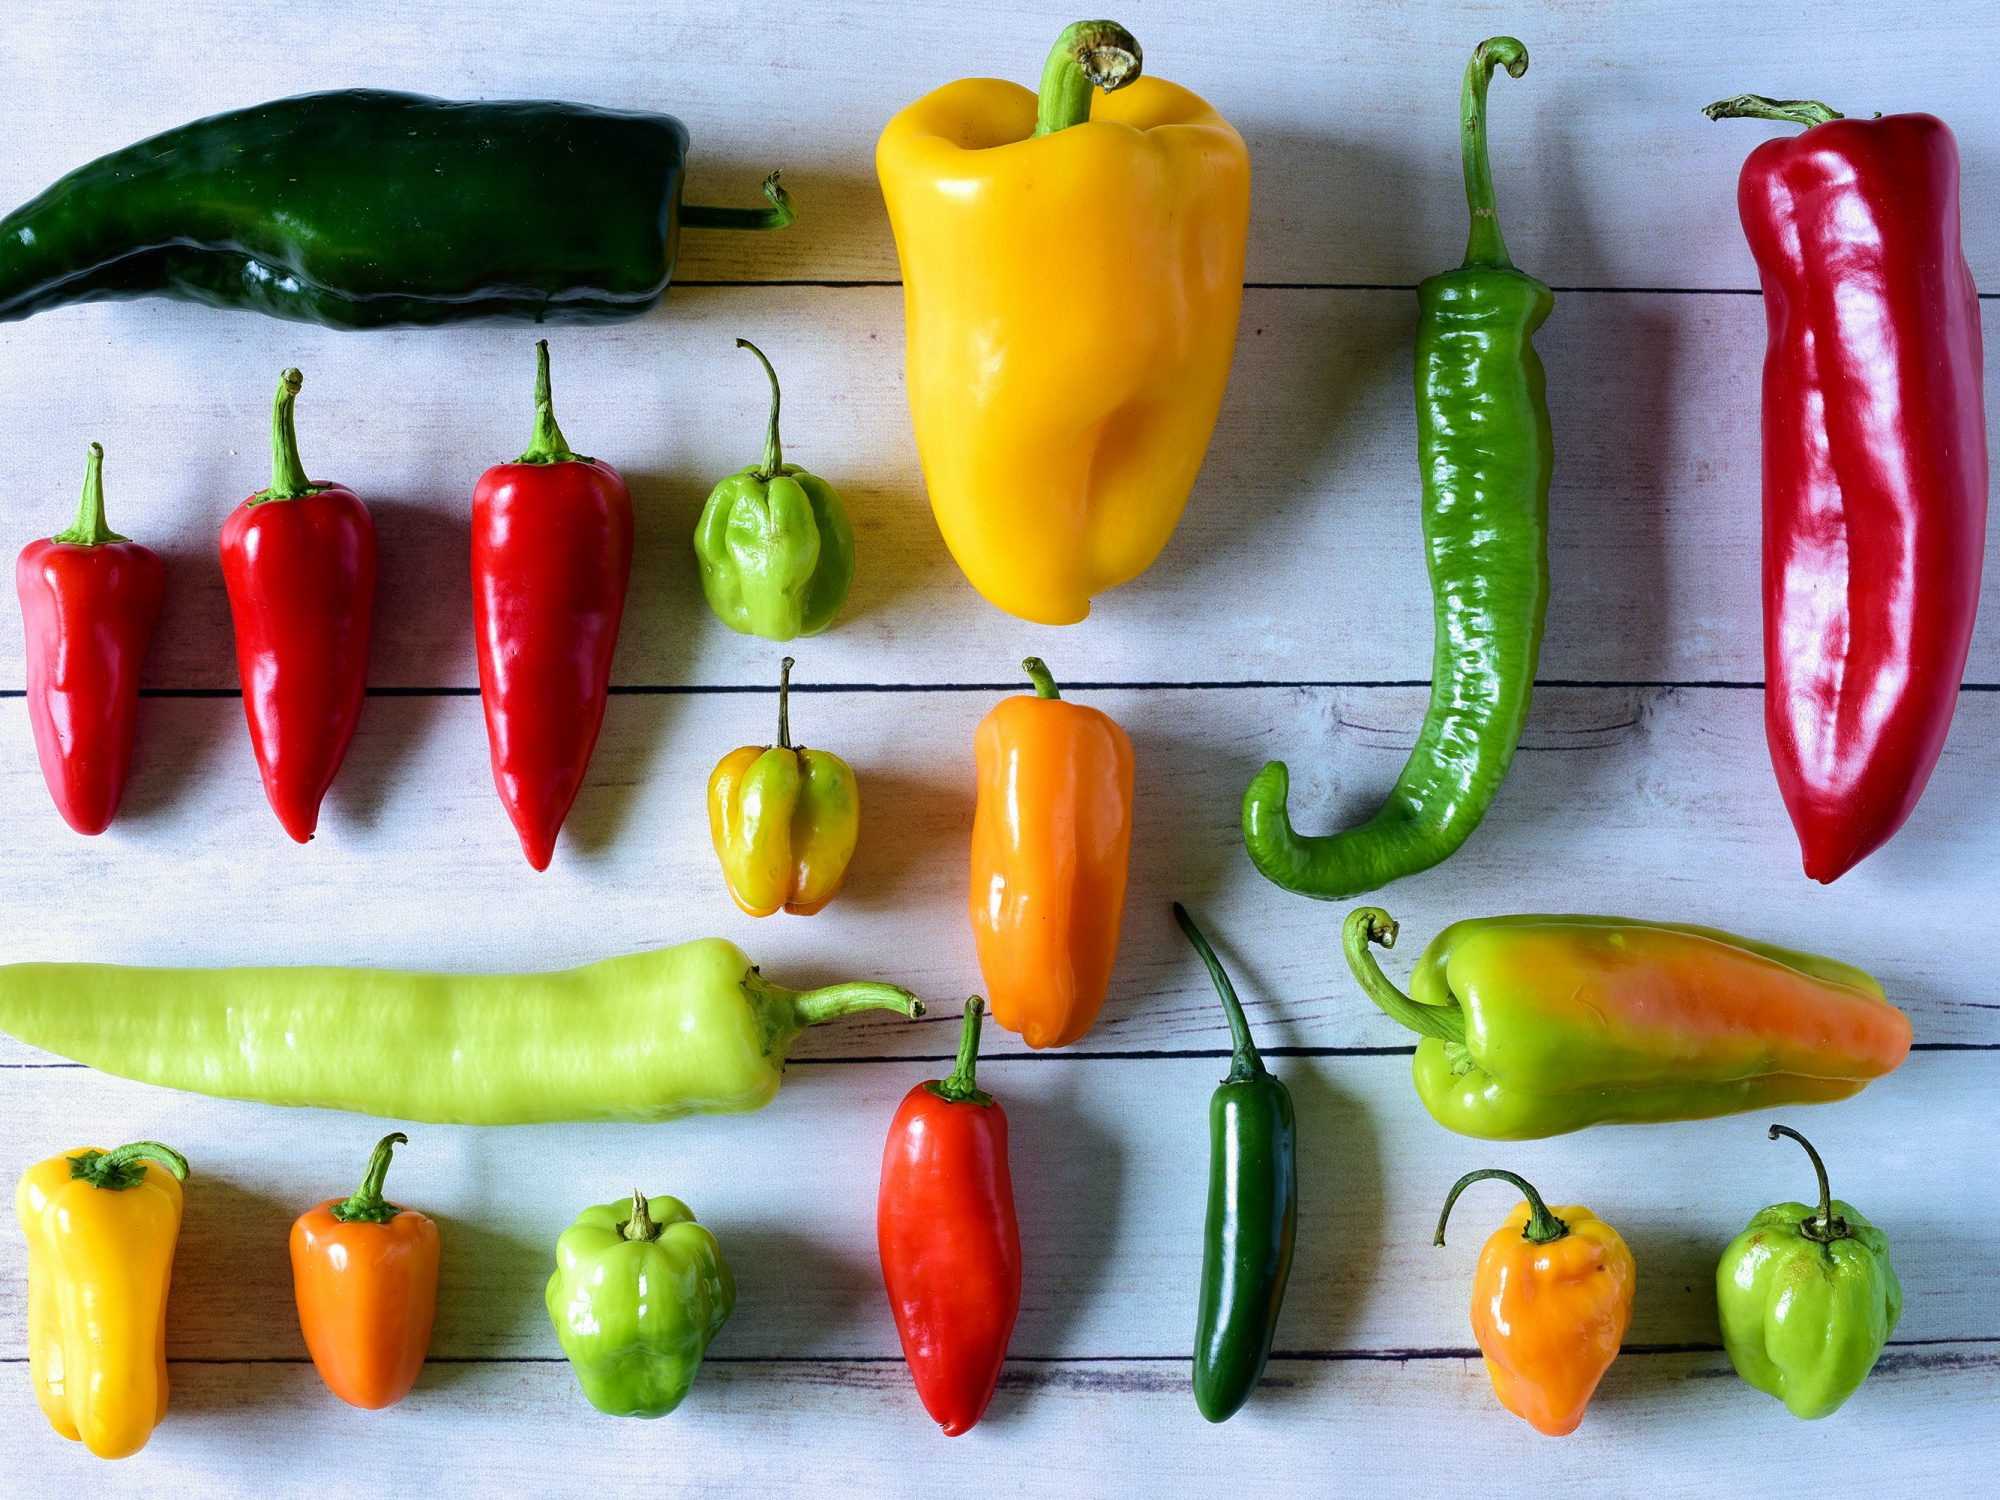 Your Guide to the 10 Chile Peppers Most Likely to Show Up in a Recipe